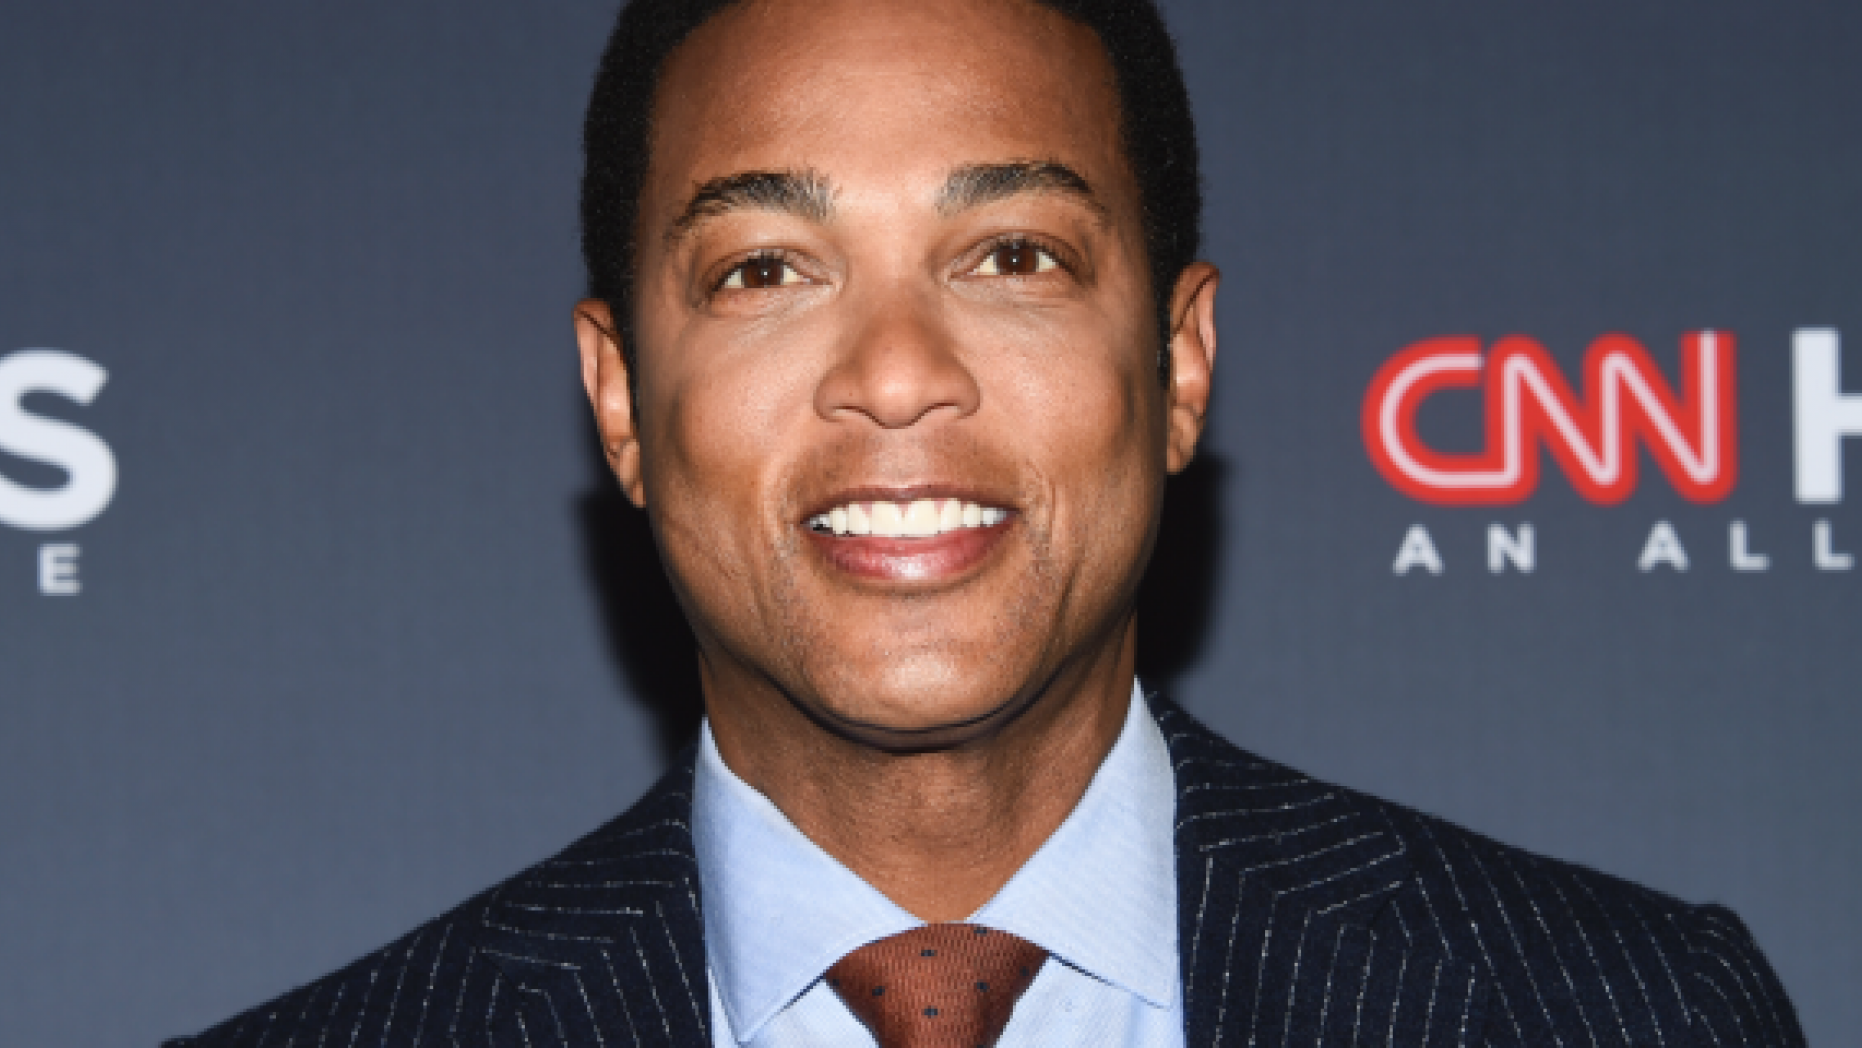 CNN's Don Lemon bashed GOP lawmakers in Wisconsin for removing controversial former NFL quarterback Colin Kaepernick